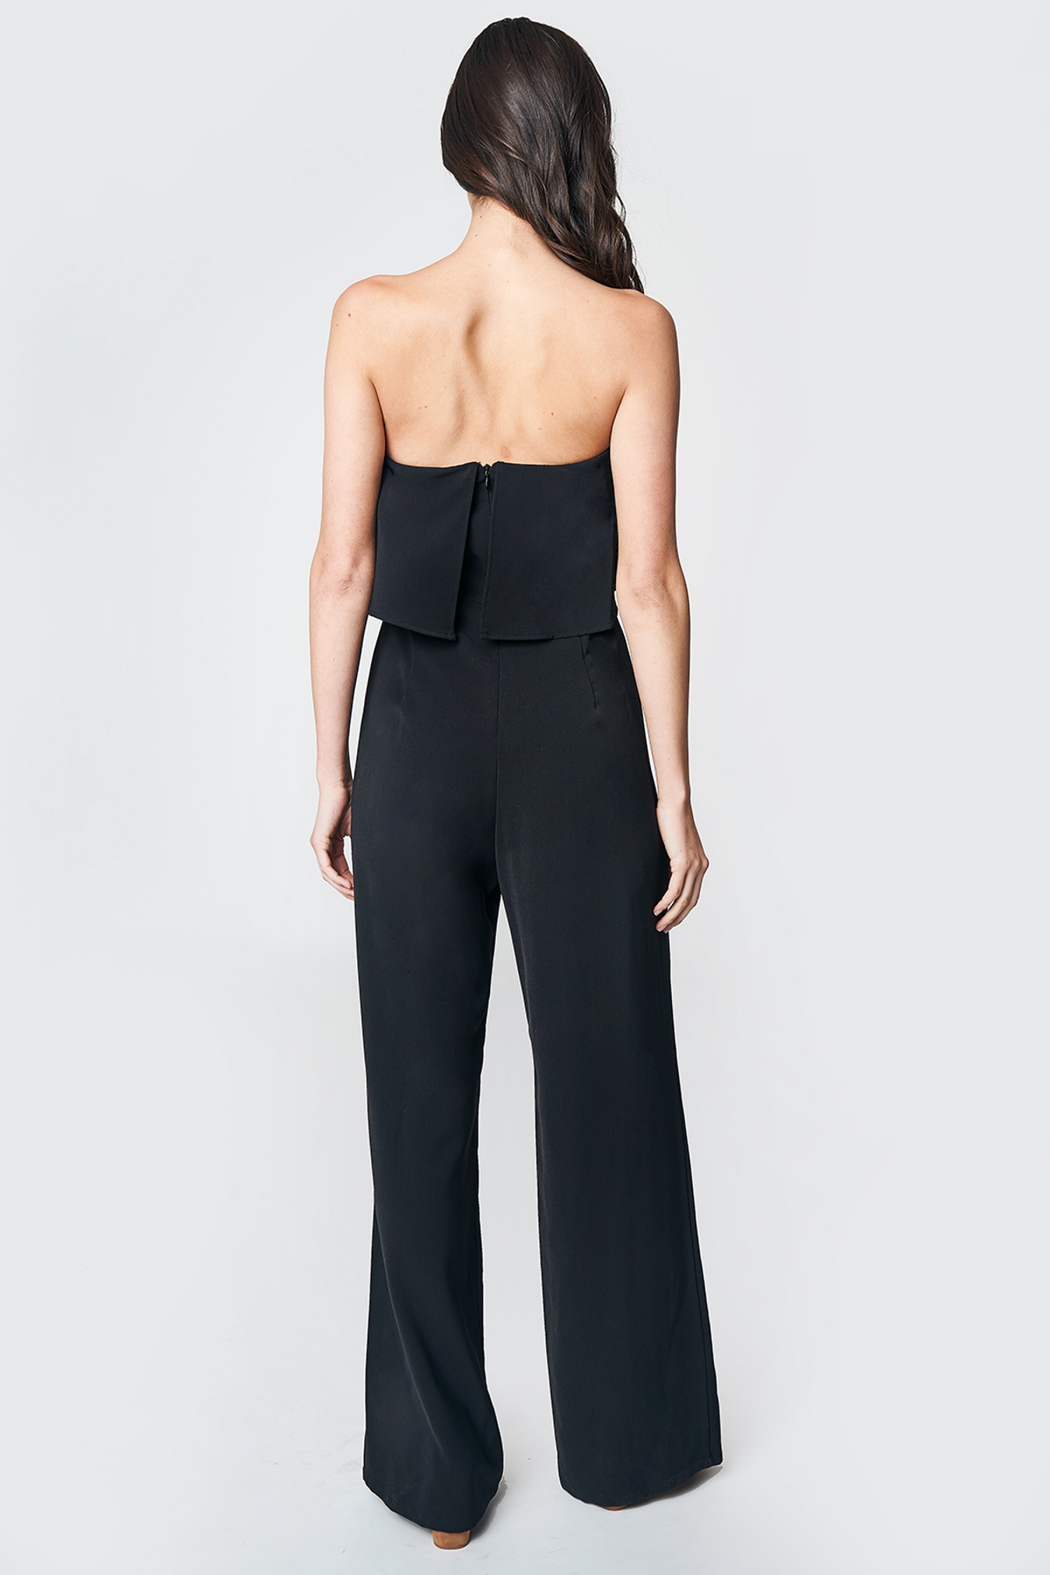 Sugarlips Emmaly Strapless Jumpsuit - Back Cropped Image